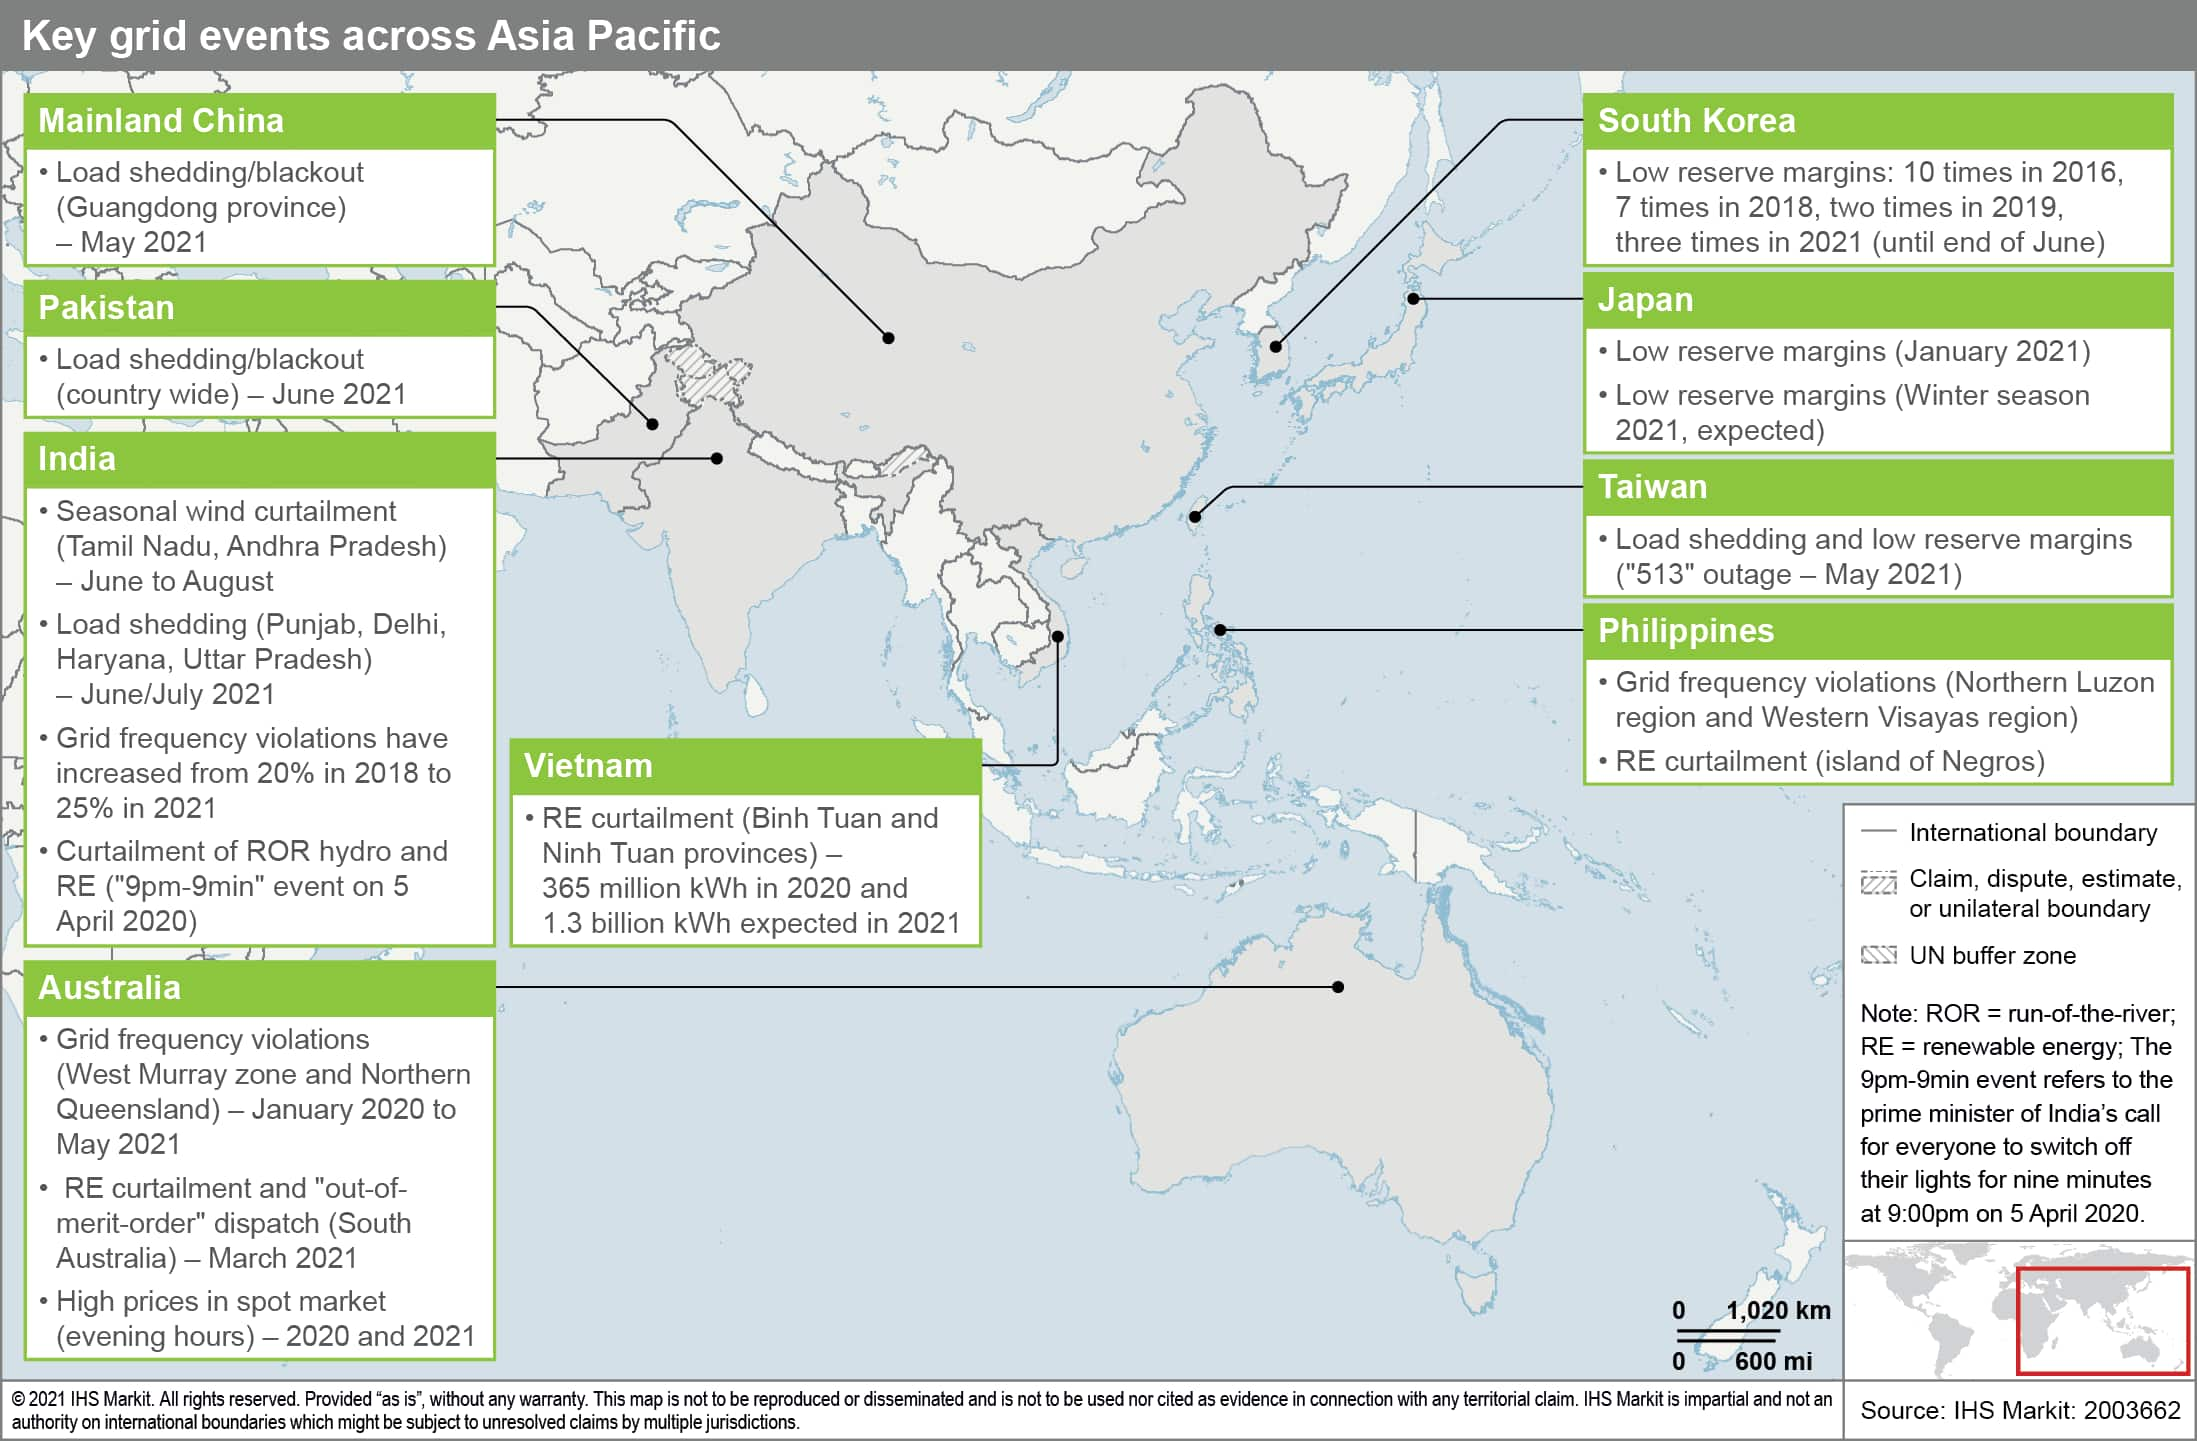 Key grid events across Asia Pacific